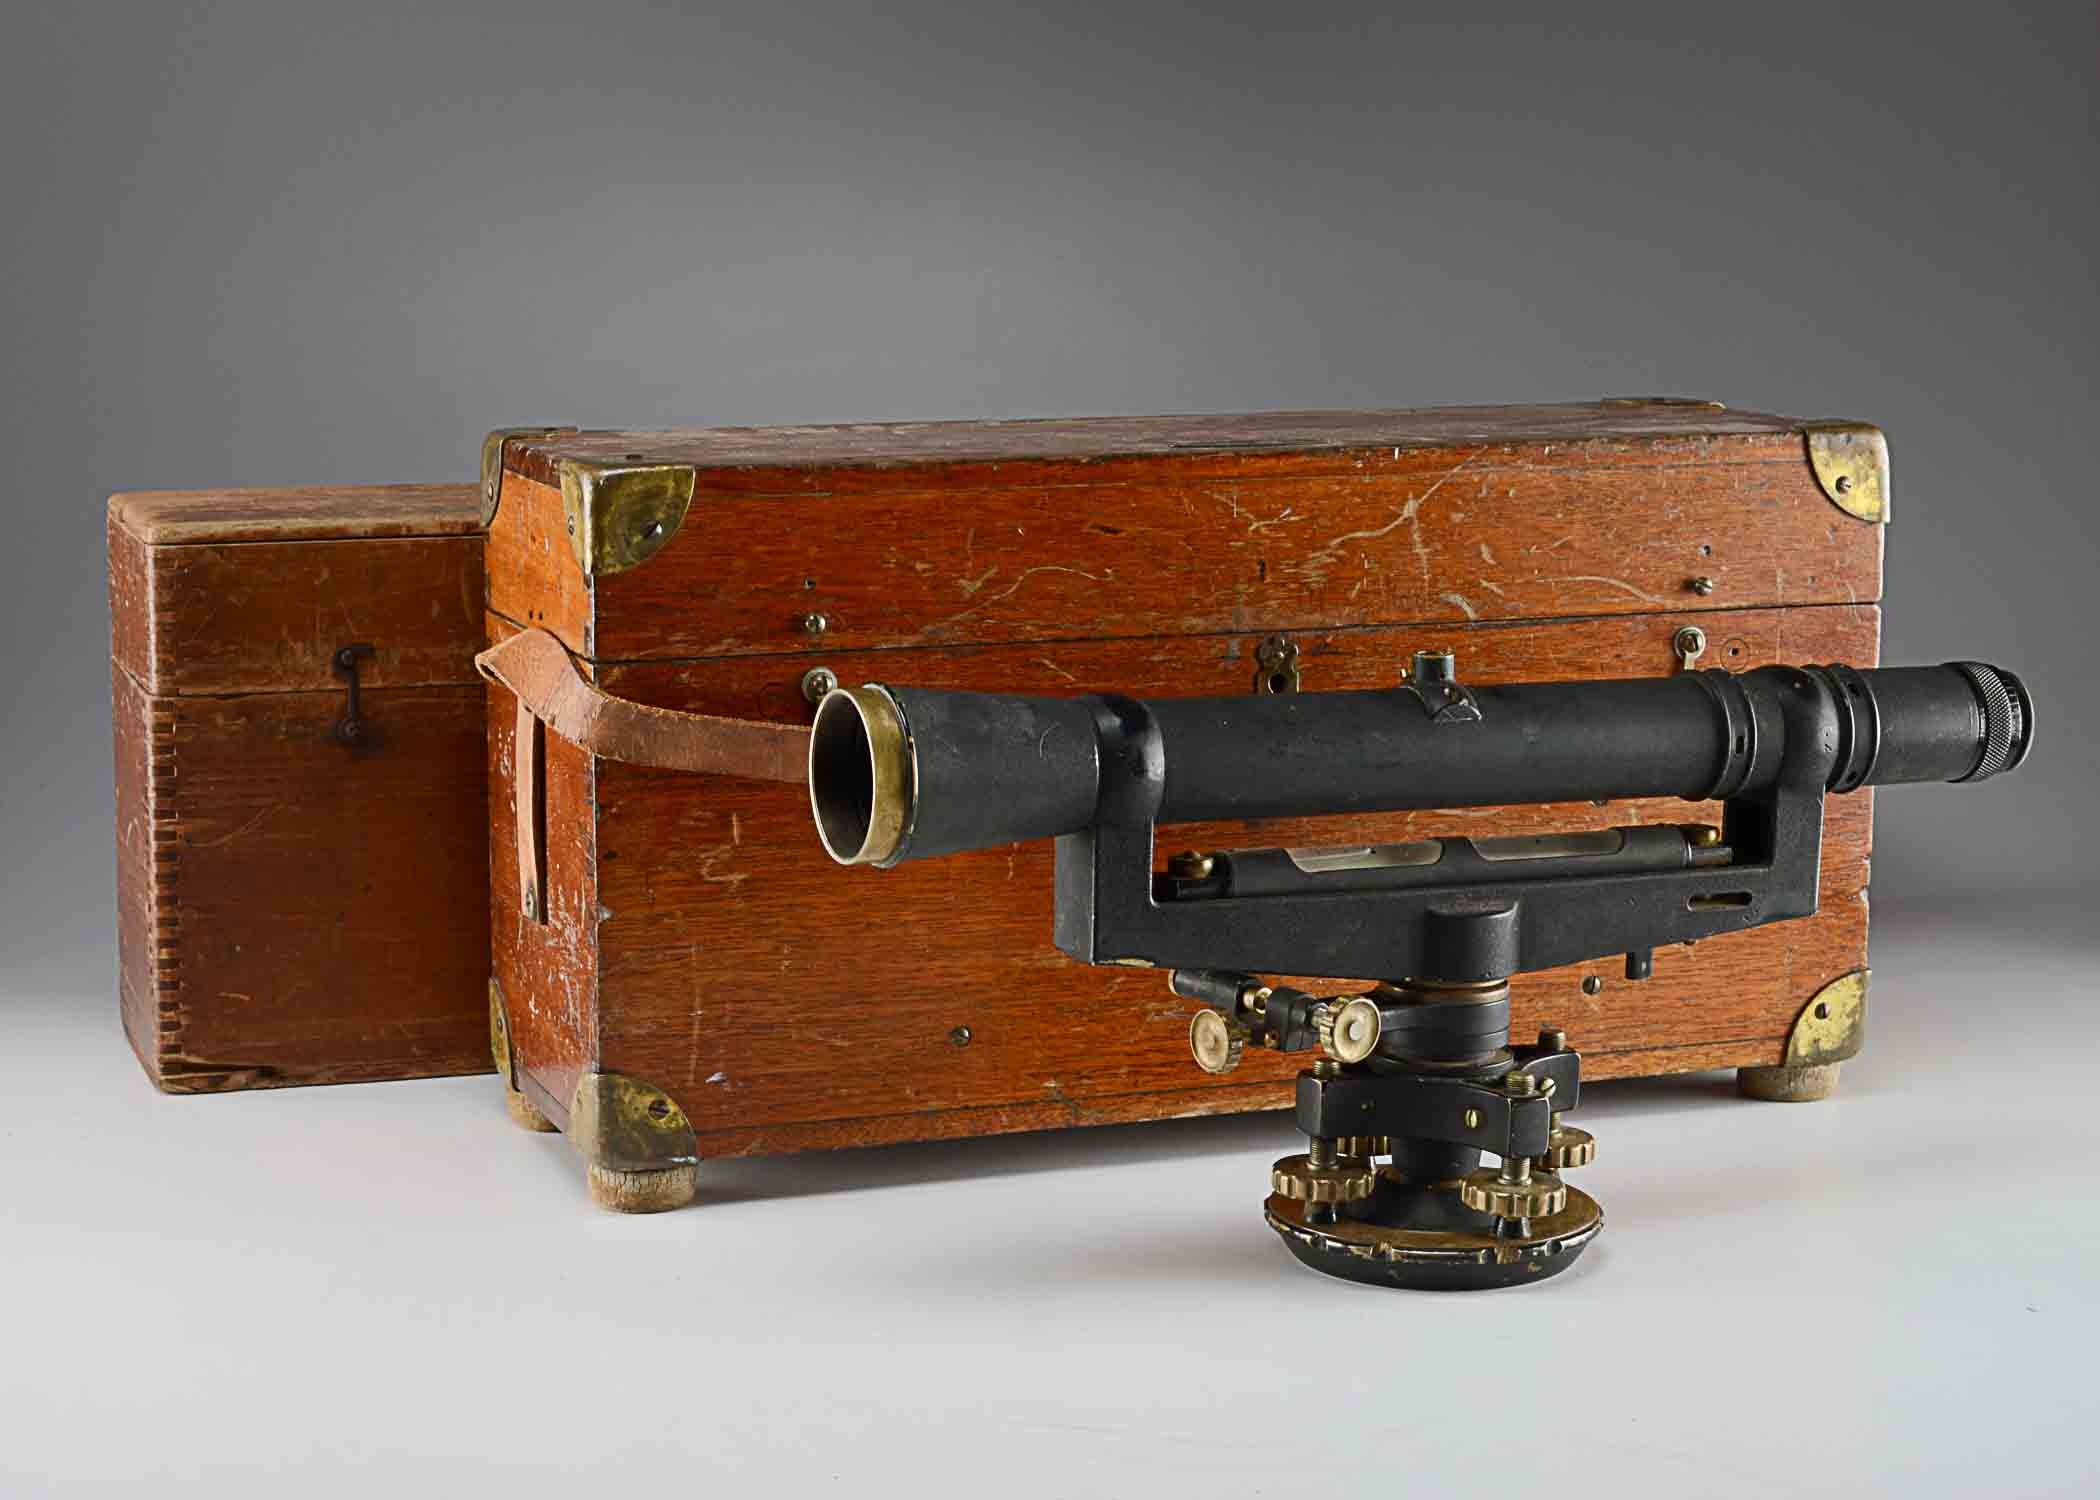 David White Co. Surveyor Transit with Original Case